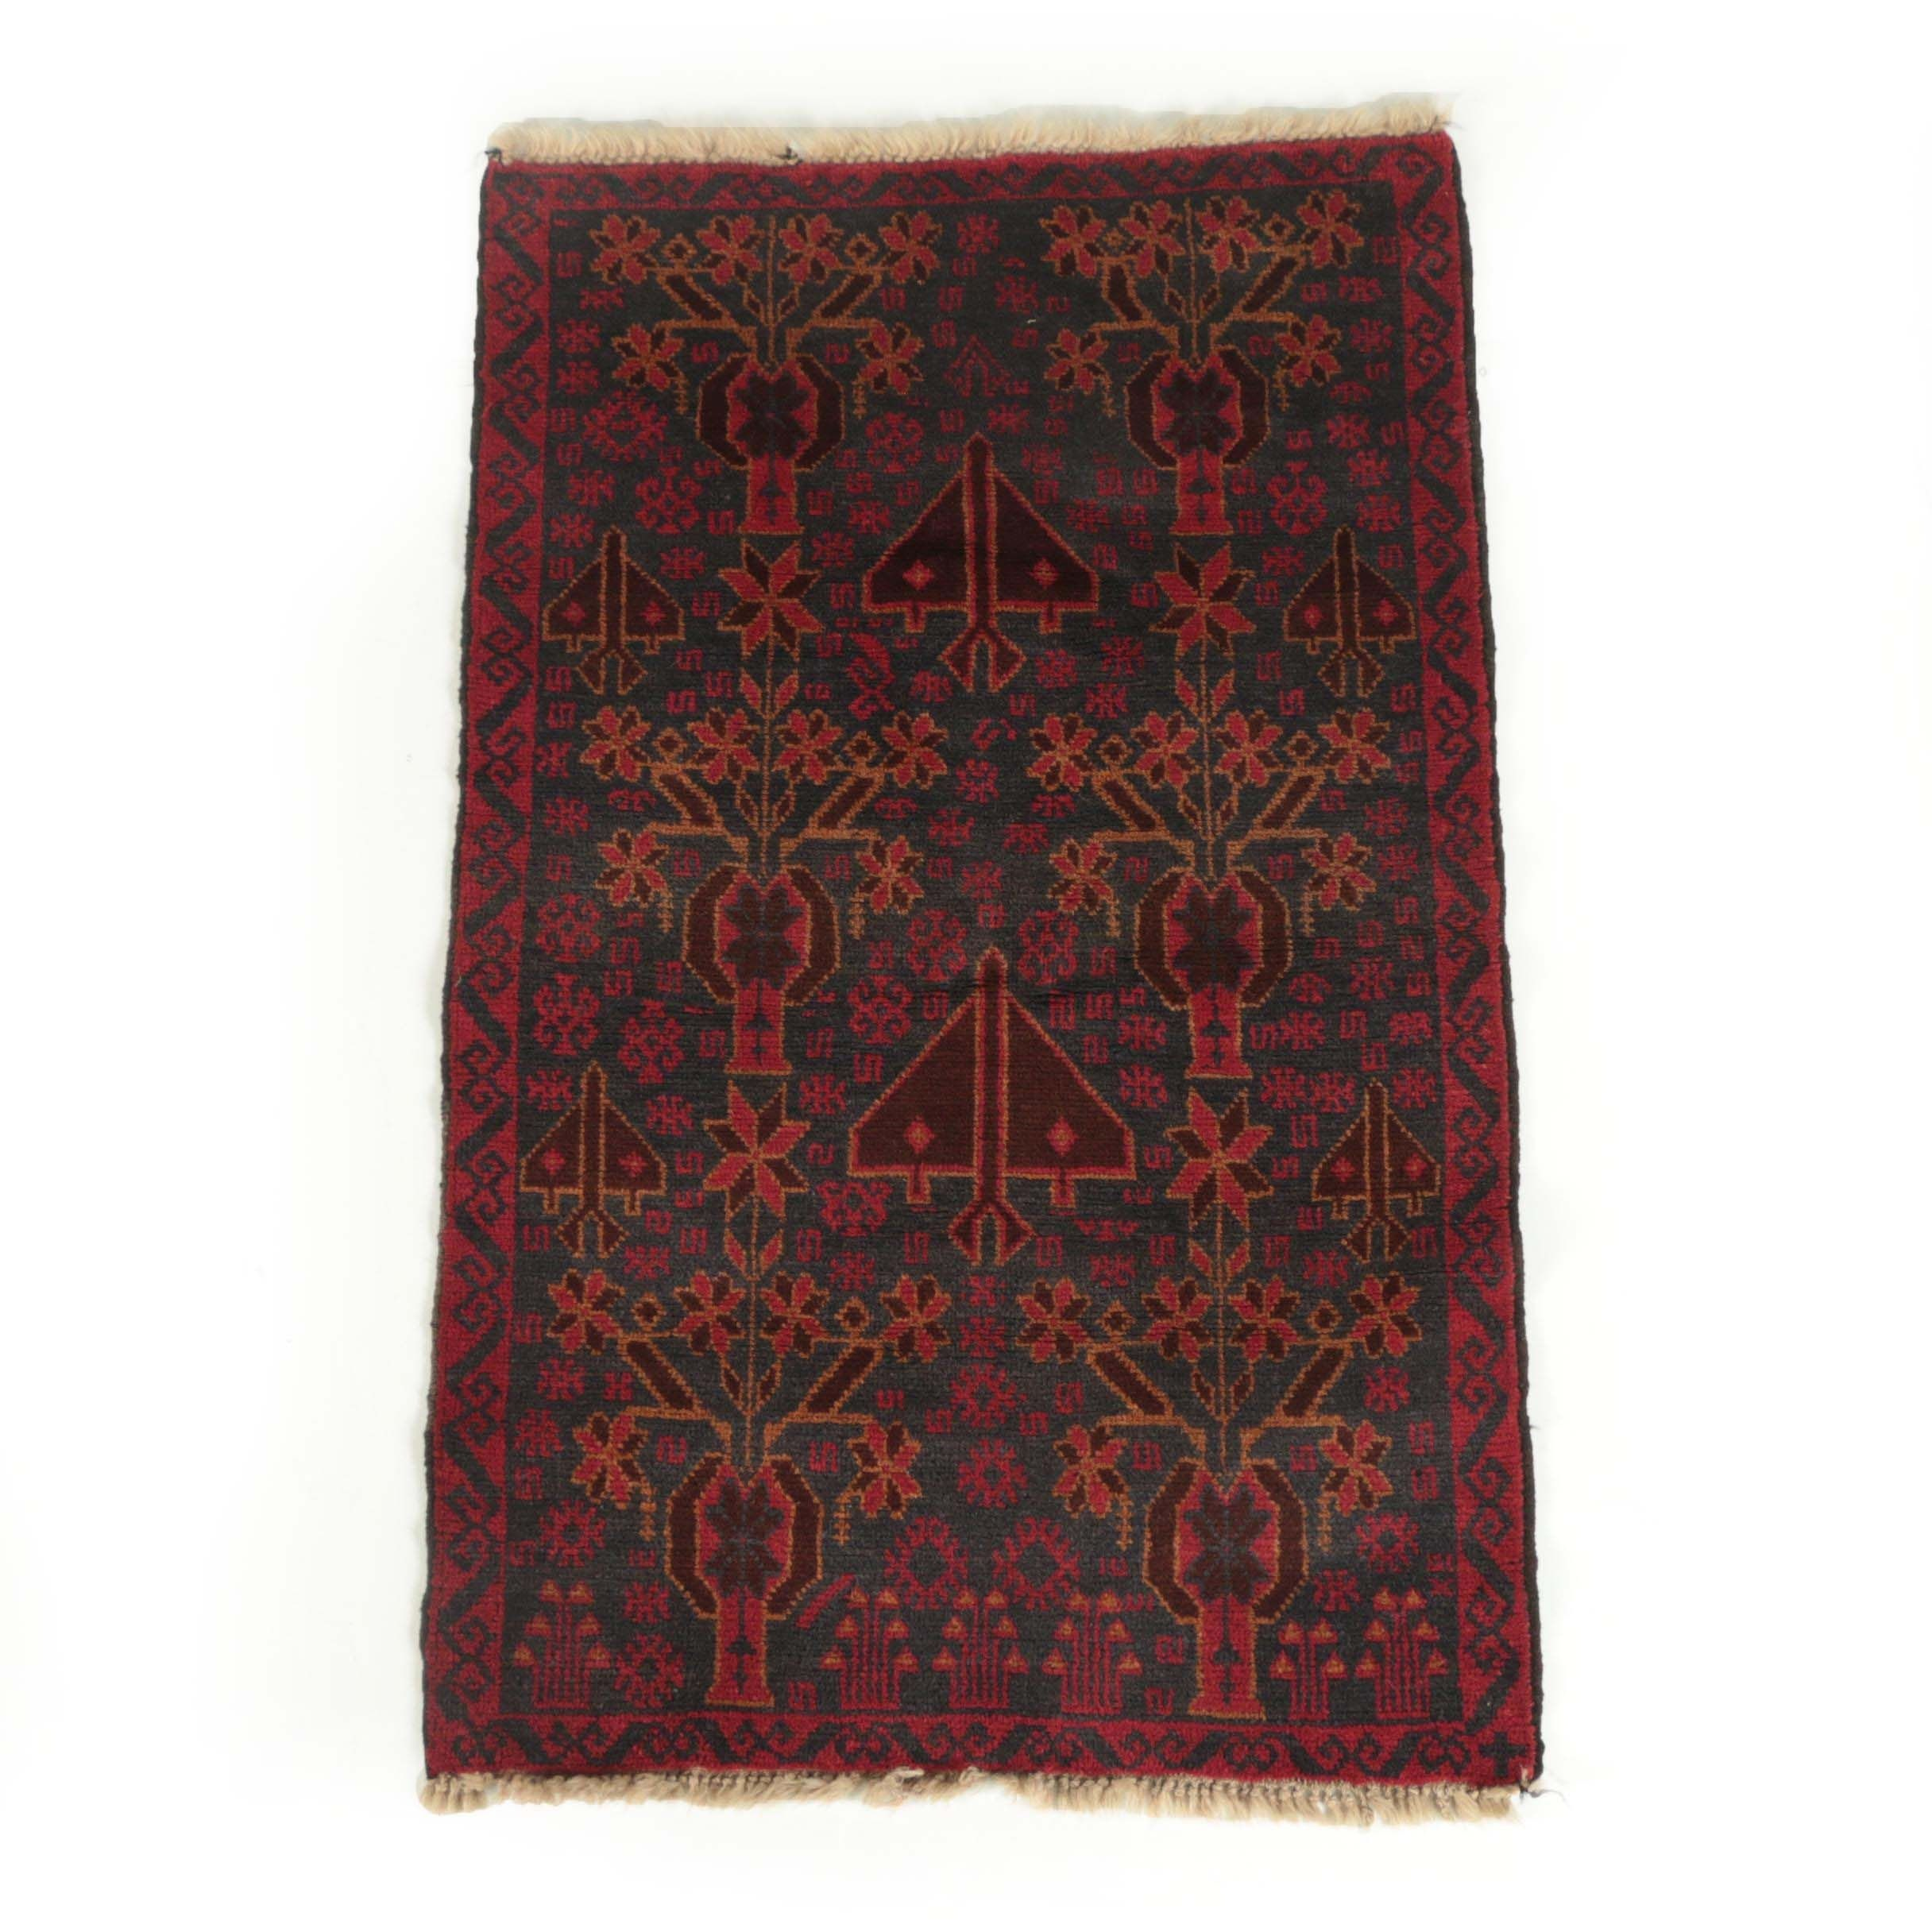 Vintage Hand-Knotted Baluch Tribal Wool Accent Rug